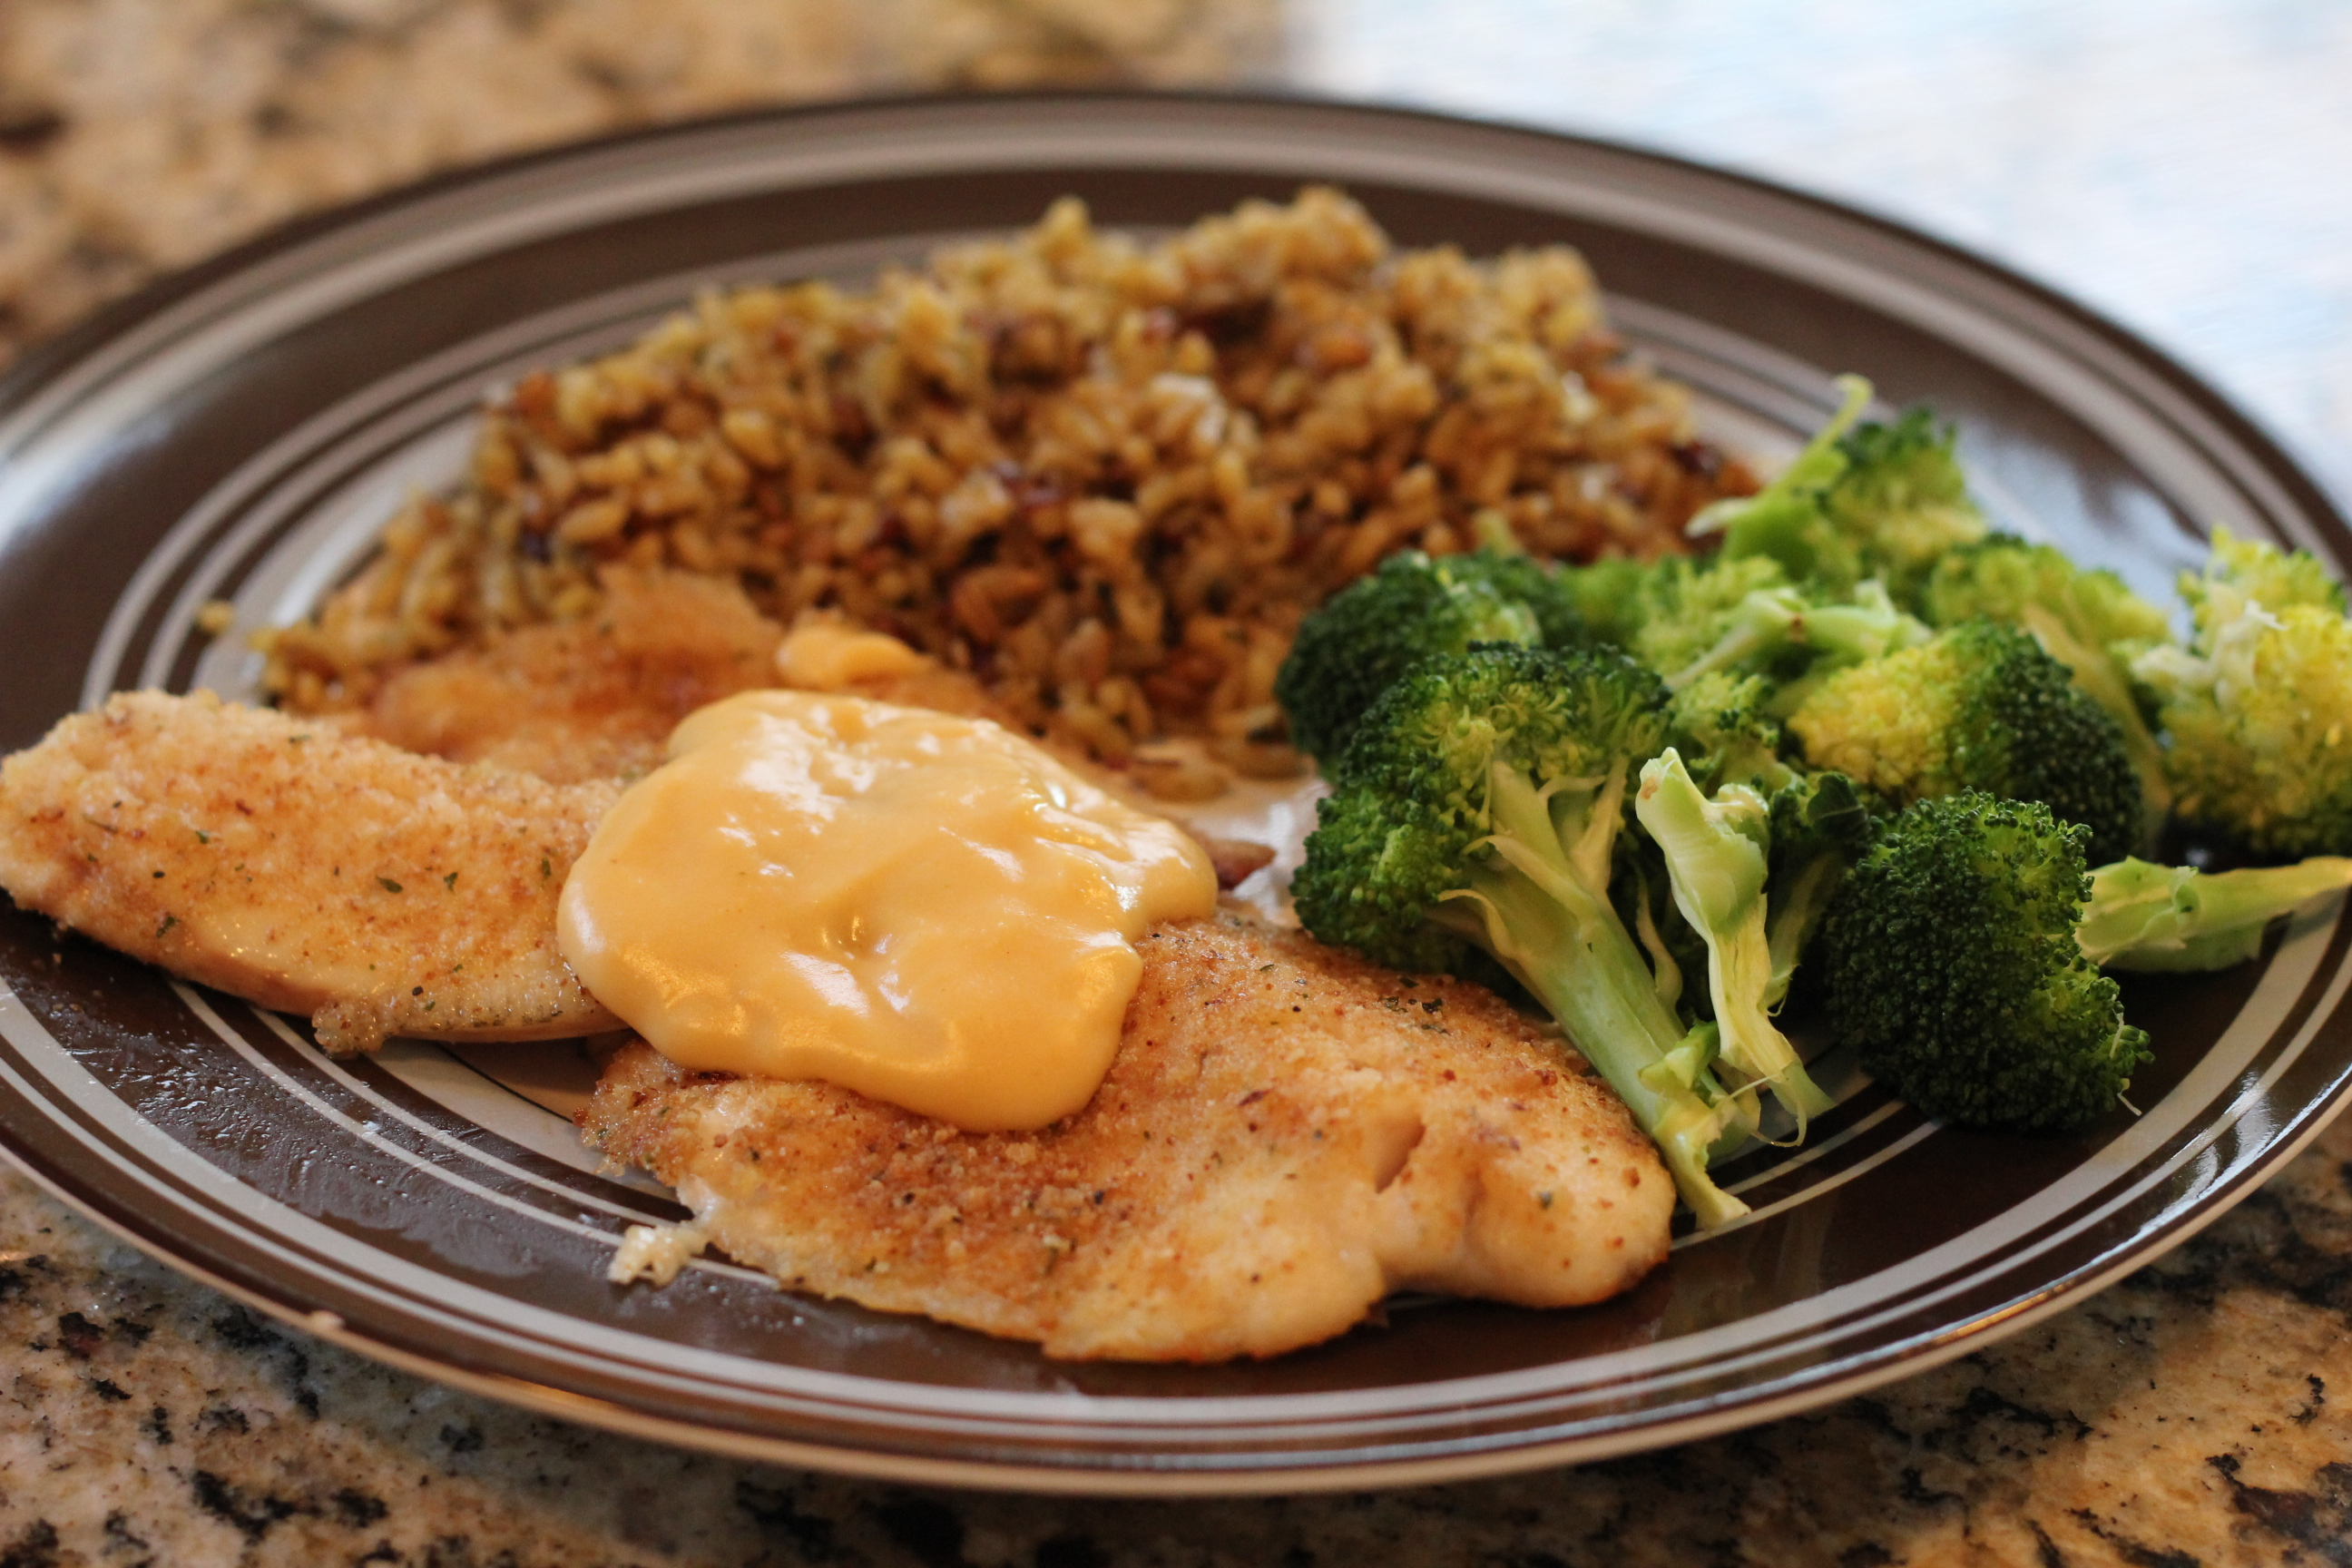 Baked Tilapia with Cheese Sauce